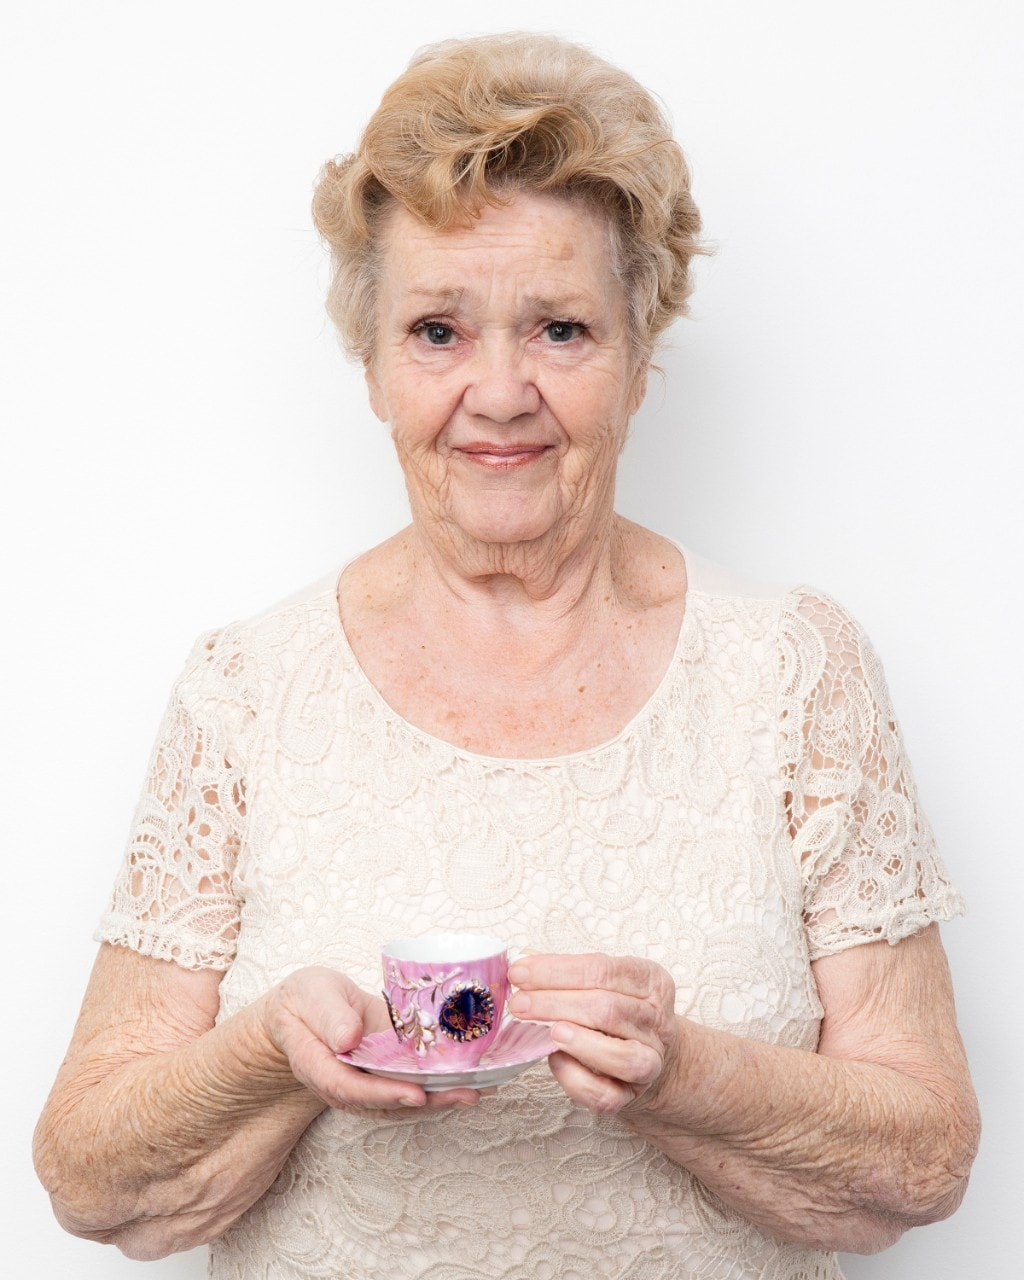 Treasured Possessions participant Maureen Lyndon holds an ornate pink tea cup. Image: Jason Cole